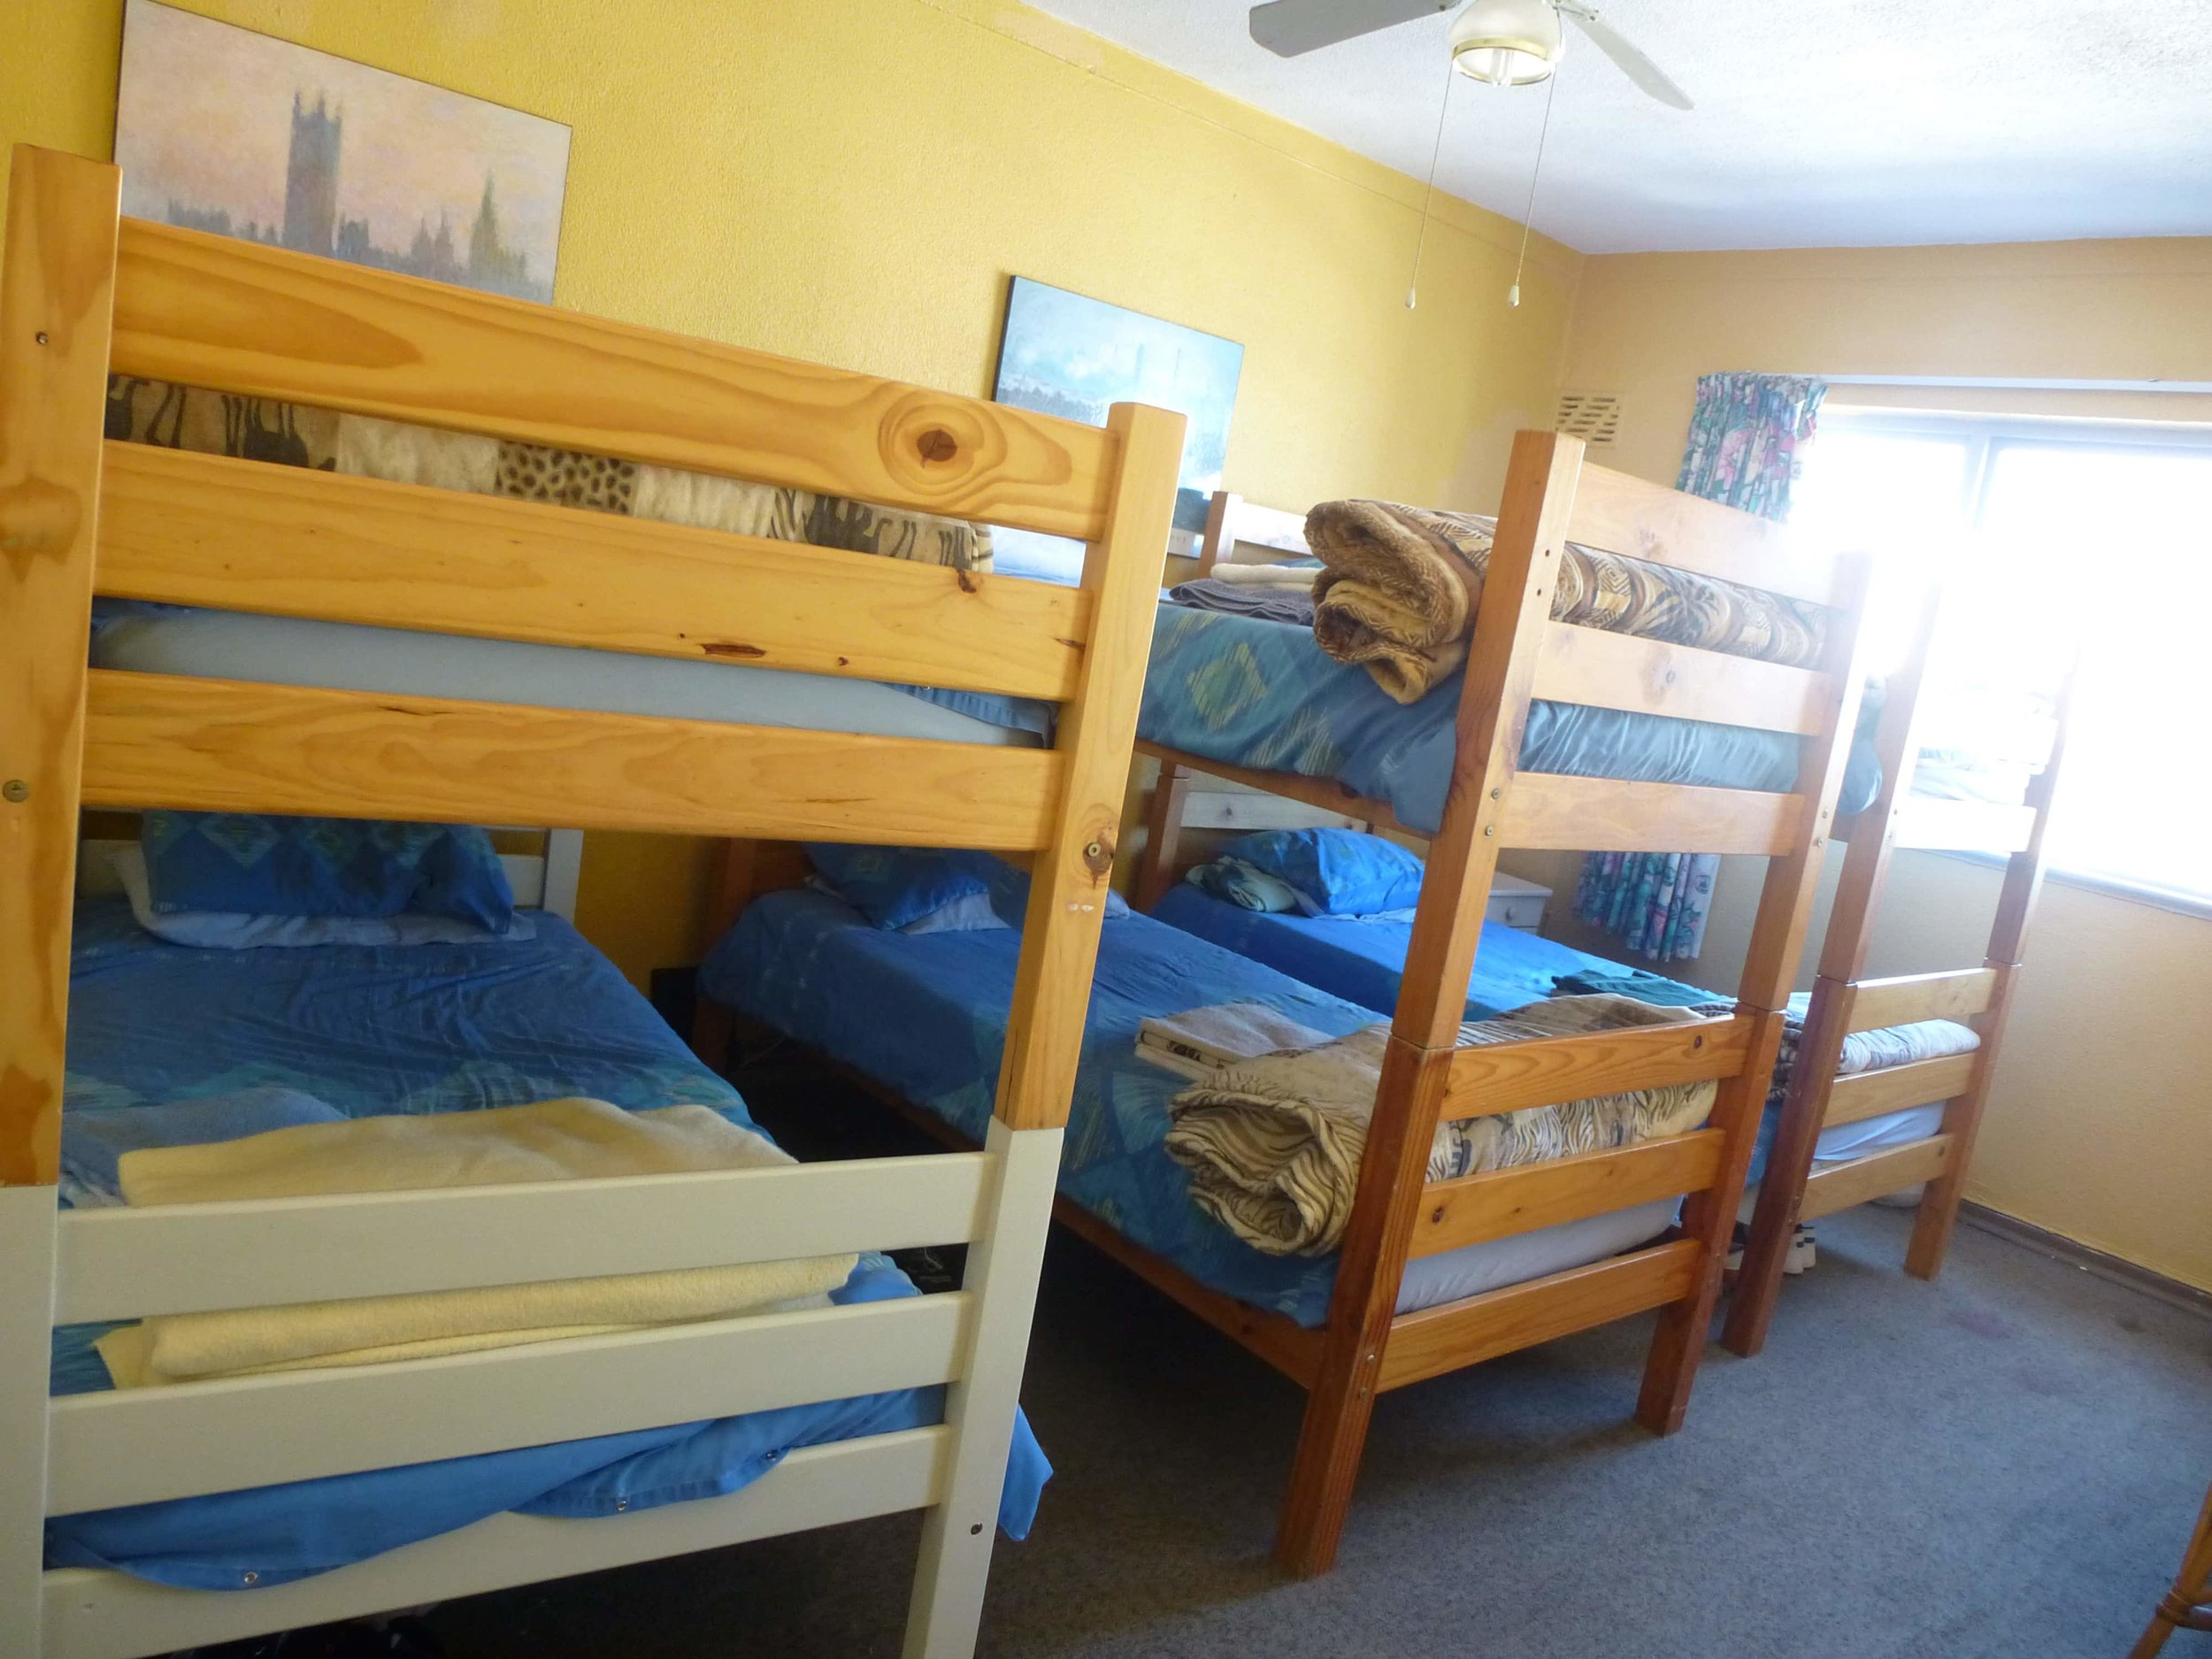 LAL-CPT-YL-Accommodation-Multi-bedded-shared-room-10-min.JPG